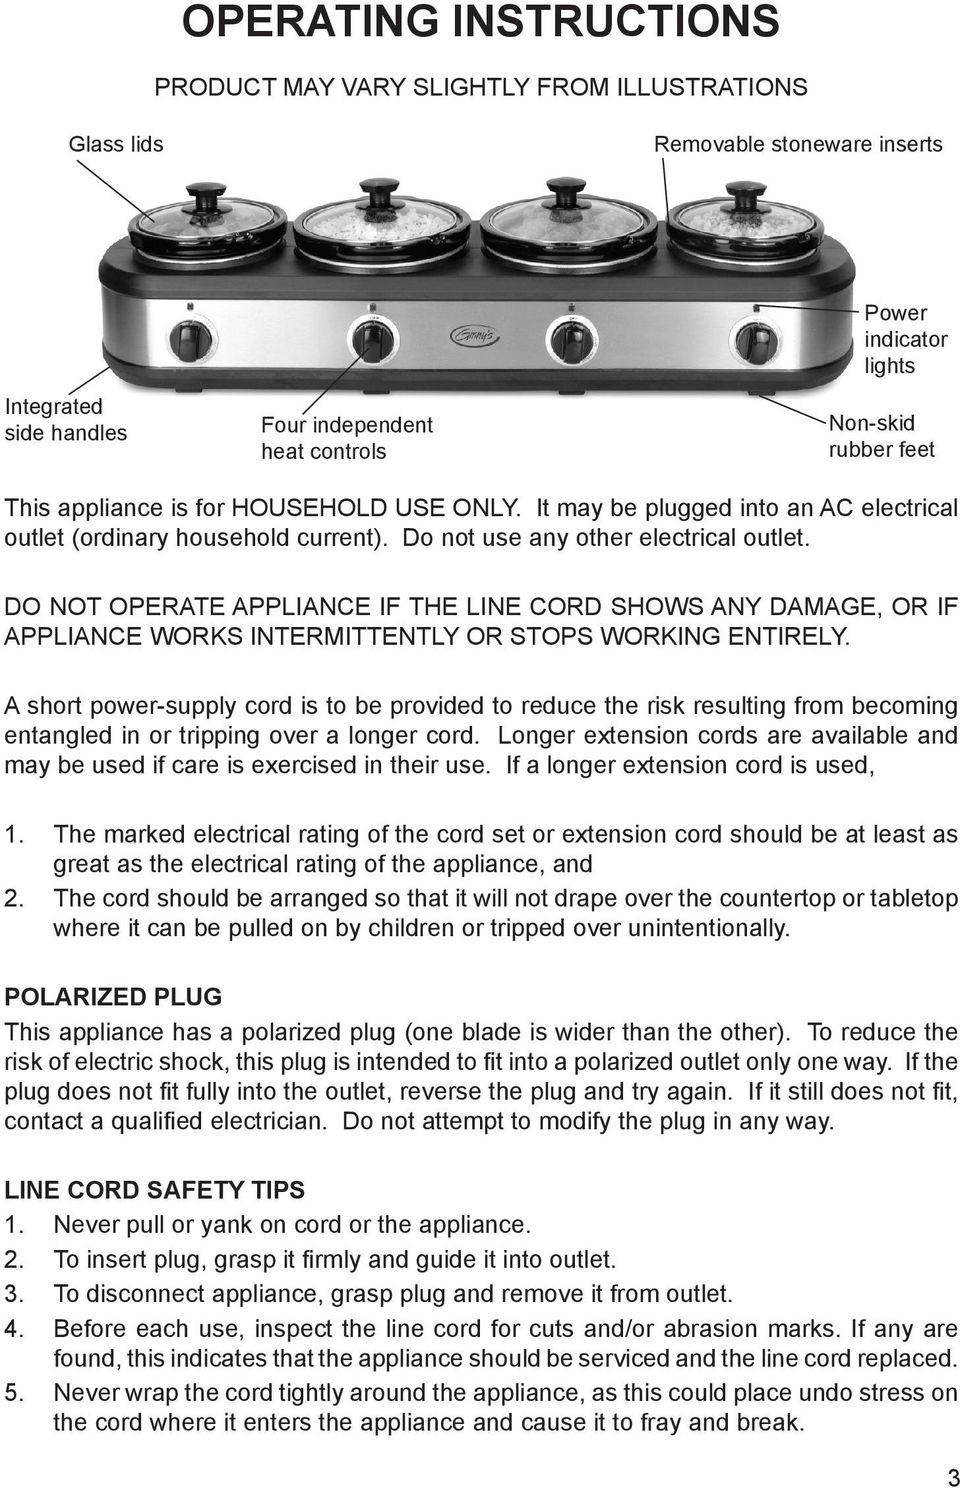 DO NOT OPERATE APPLIANCE IF THE LINE CORD SHOWS ANY DAMAGE, OR IF APPLIANCE WORKS INTERMITTENTLY OR STOPS WORKING ENTIRELY.